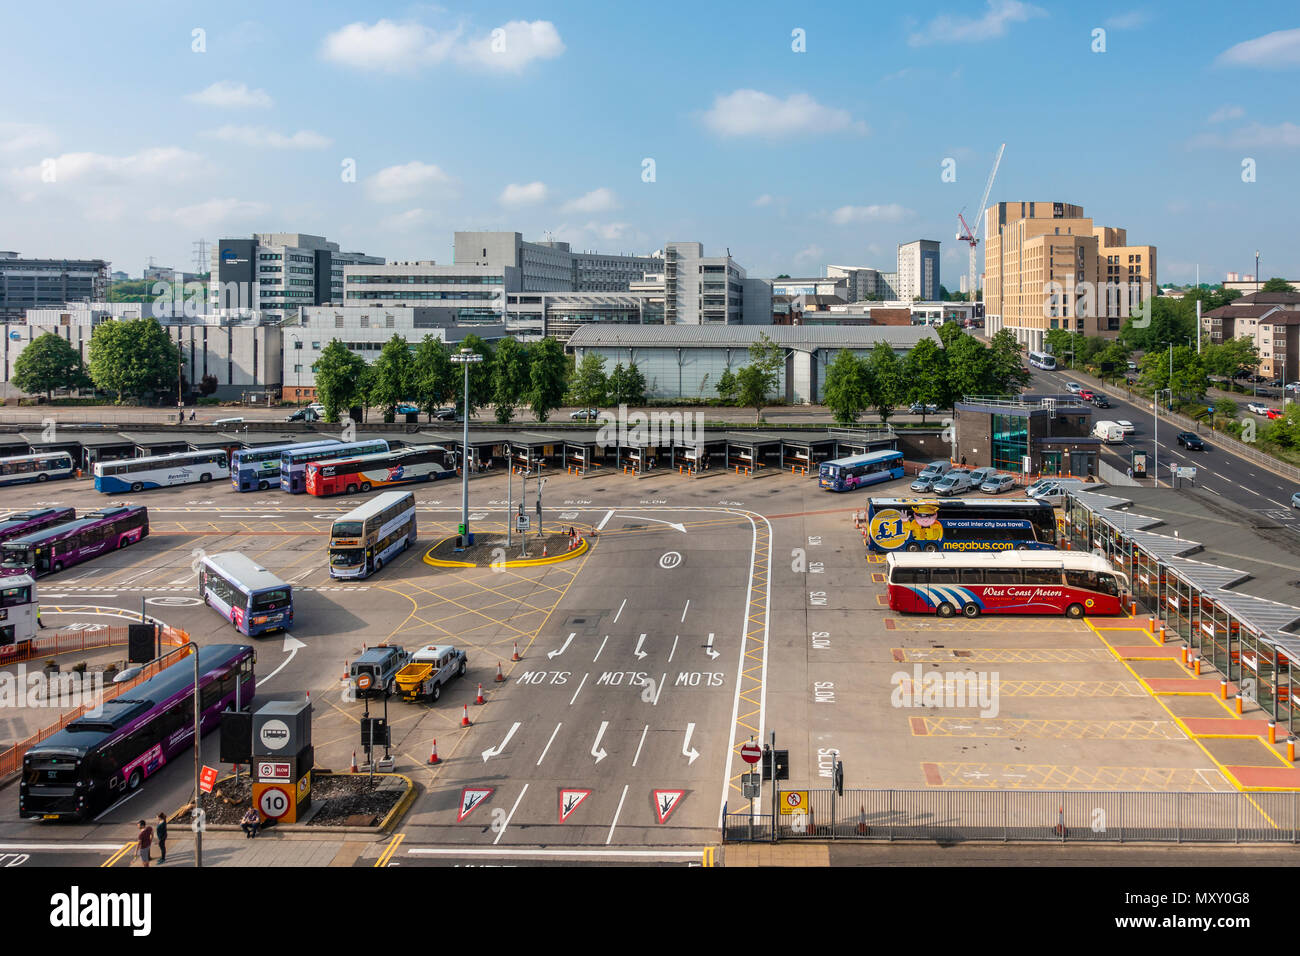 Elevated view of Buchanan Bus Station, in Glasgow city centre, with Caledonian University in the background. This is Glasgow's main bus terminus, - Stock Image